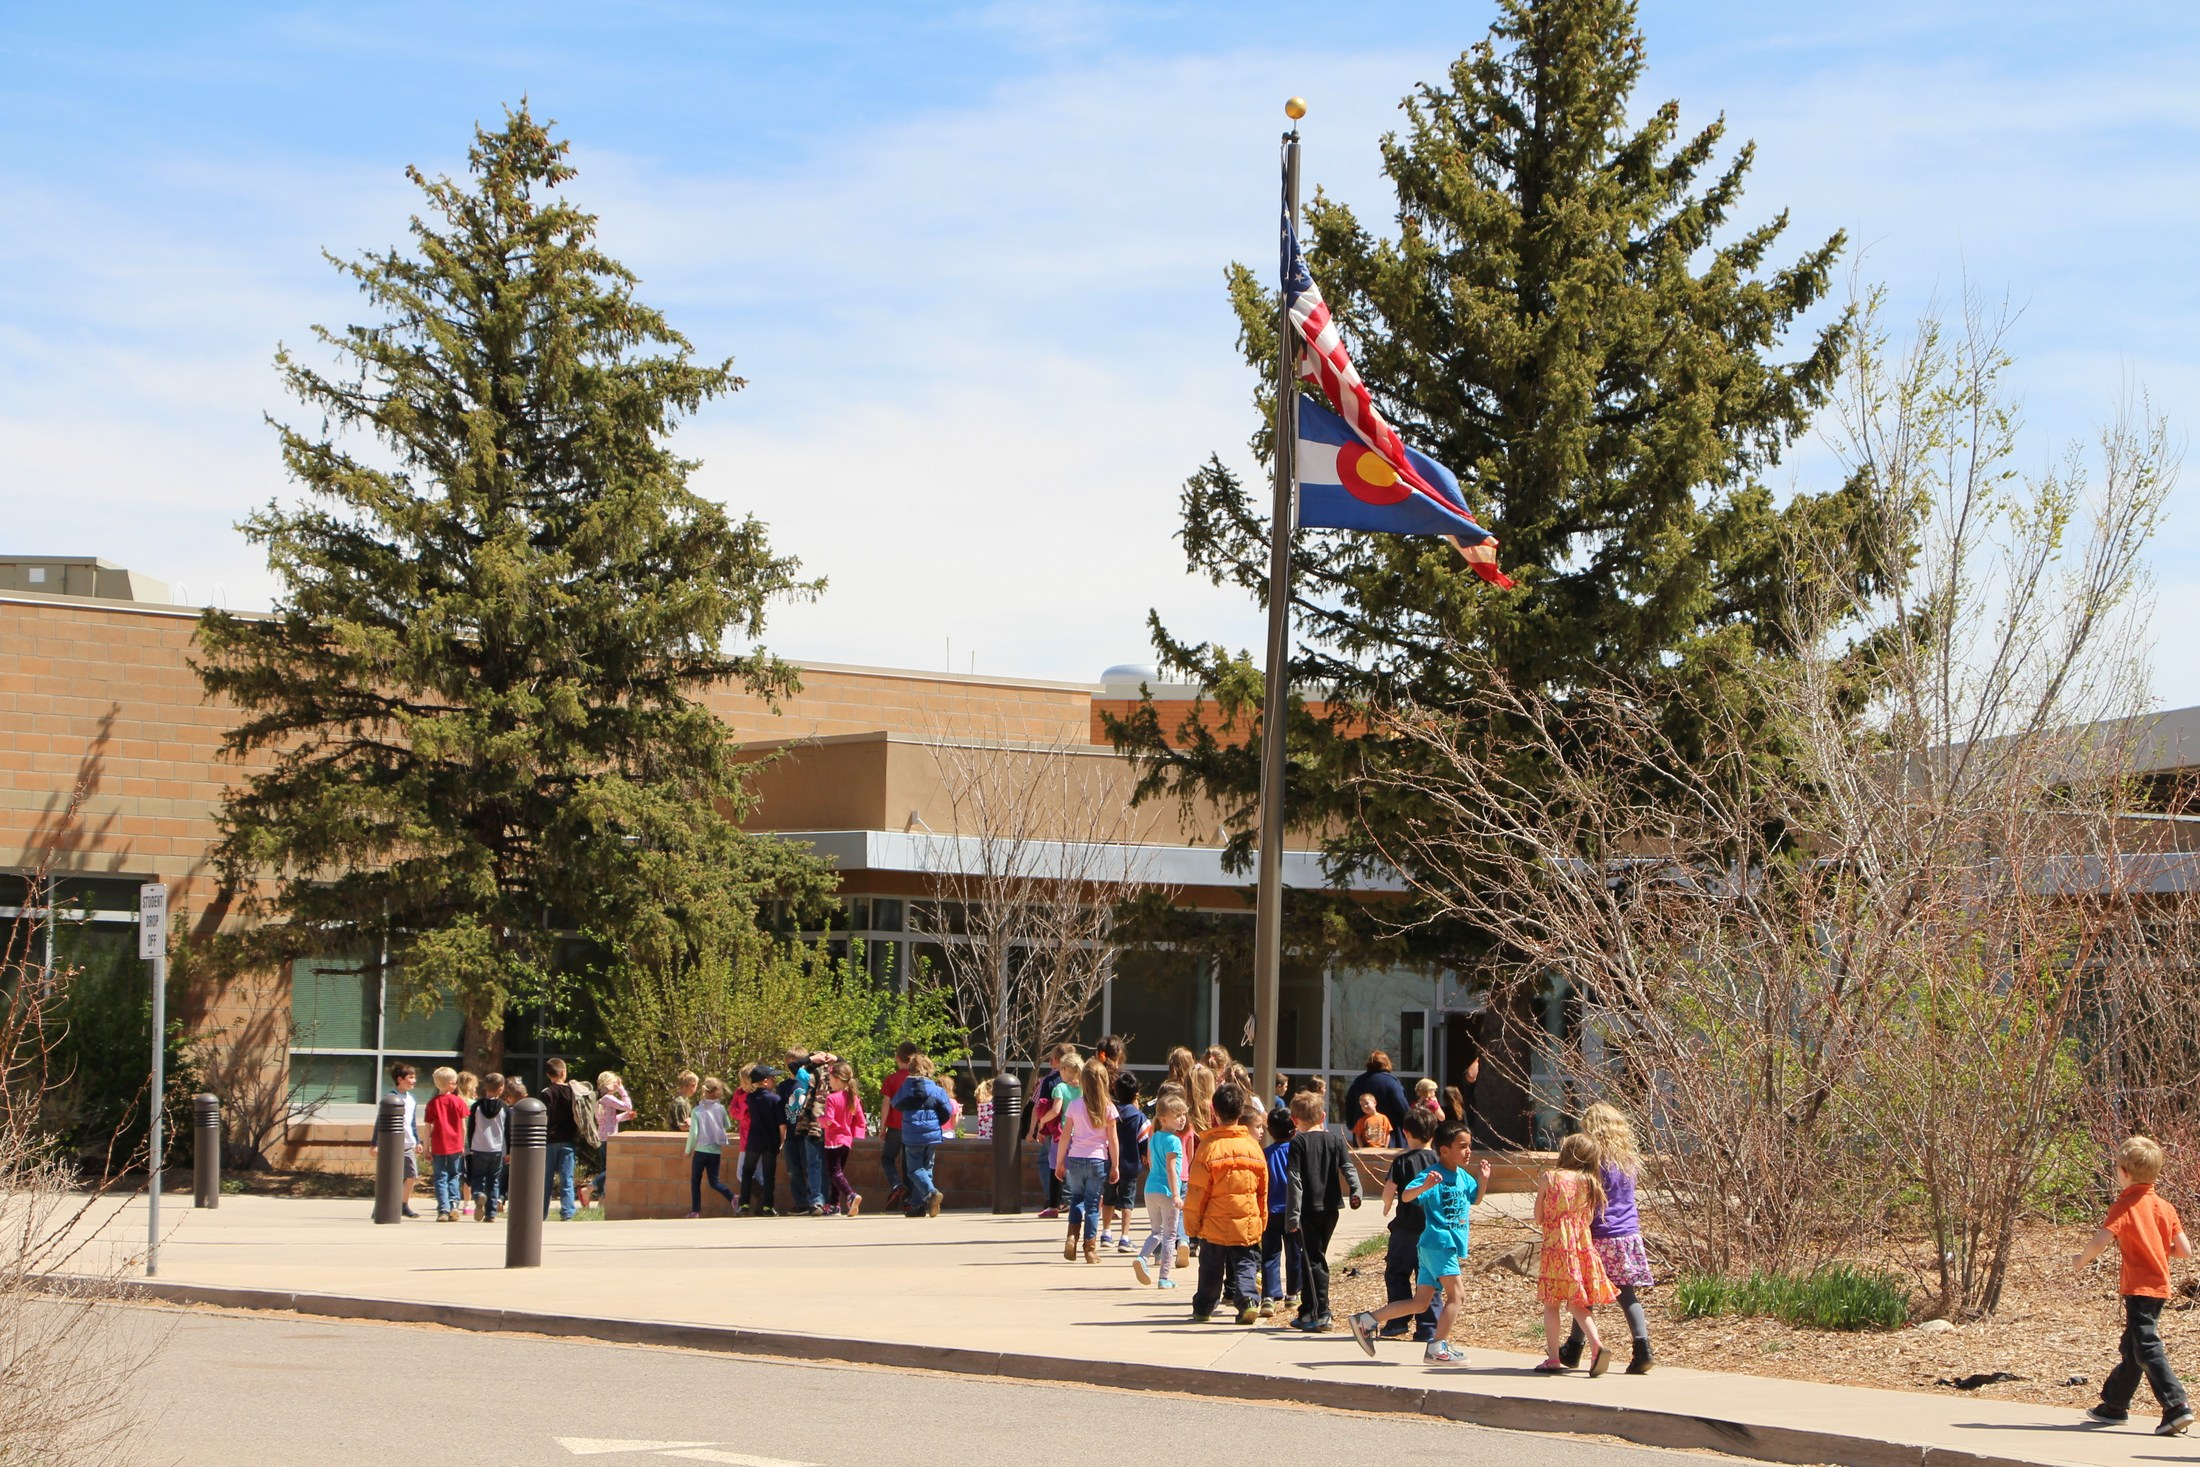 Students lined up to enter the school.